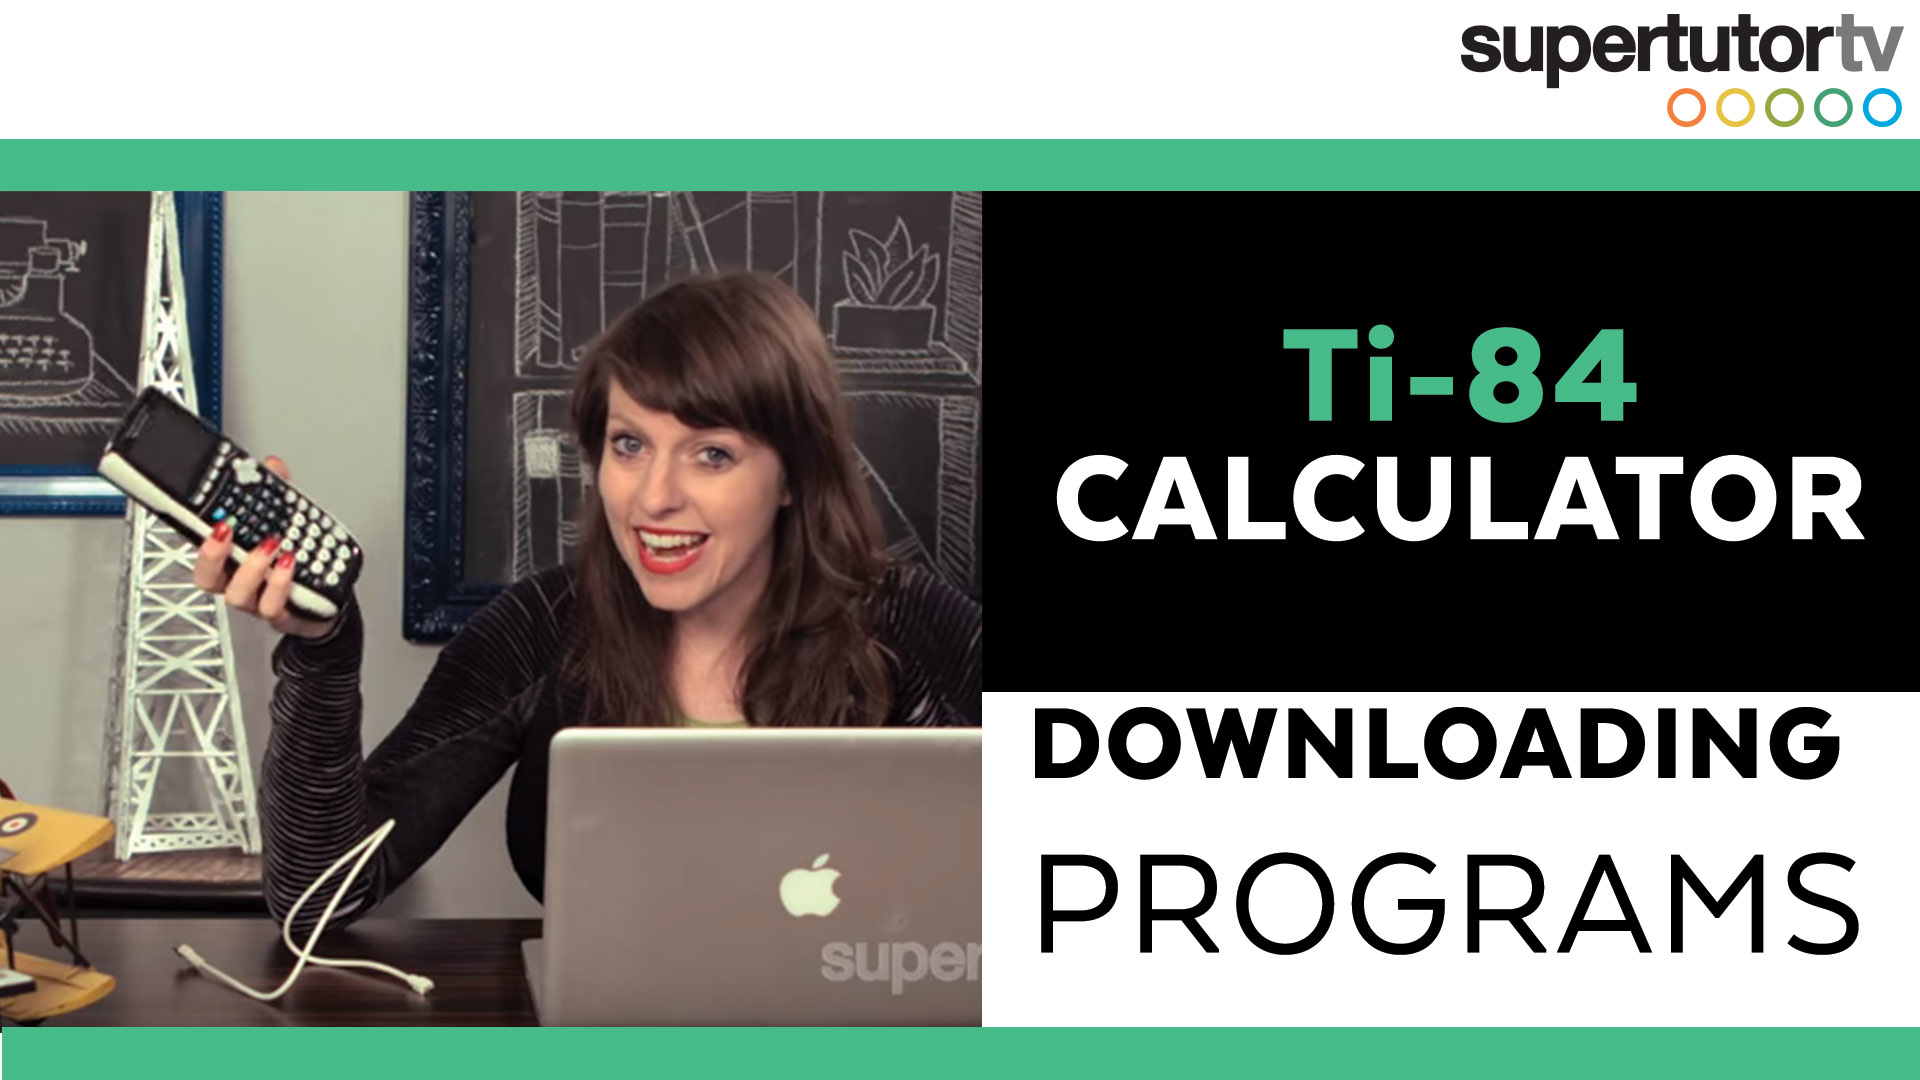 Ti-84 Calculator: Downloading Programs to Make Your LIfe Easier on the SAT and ACT Math Sections